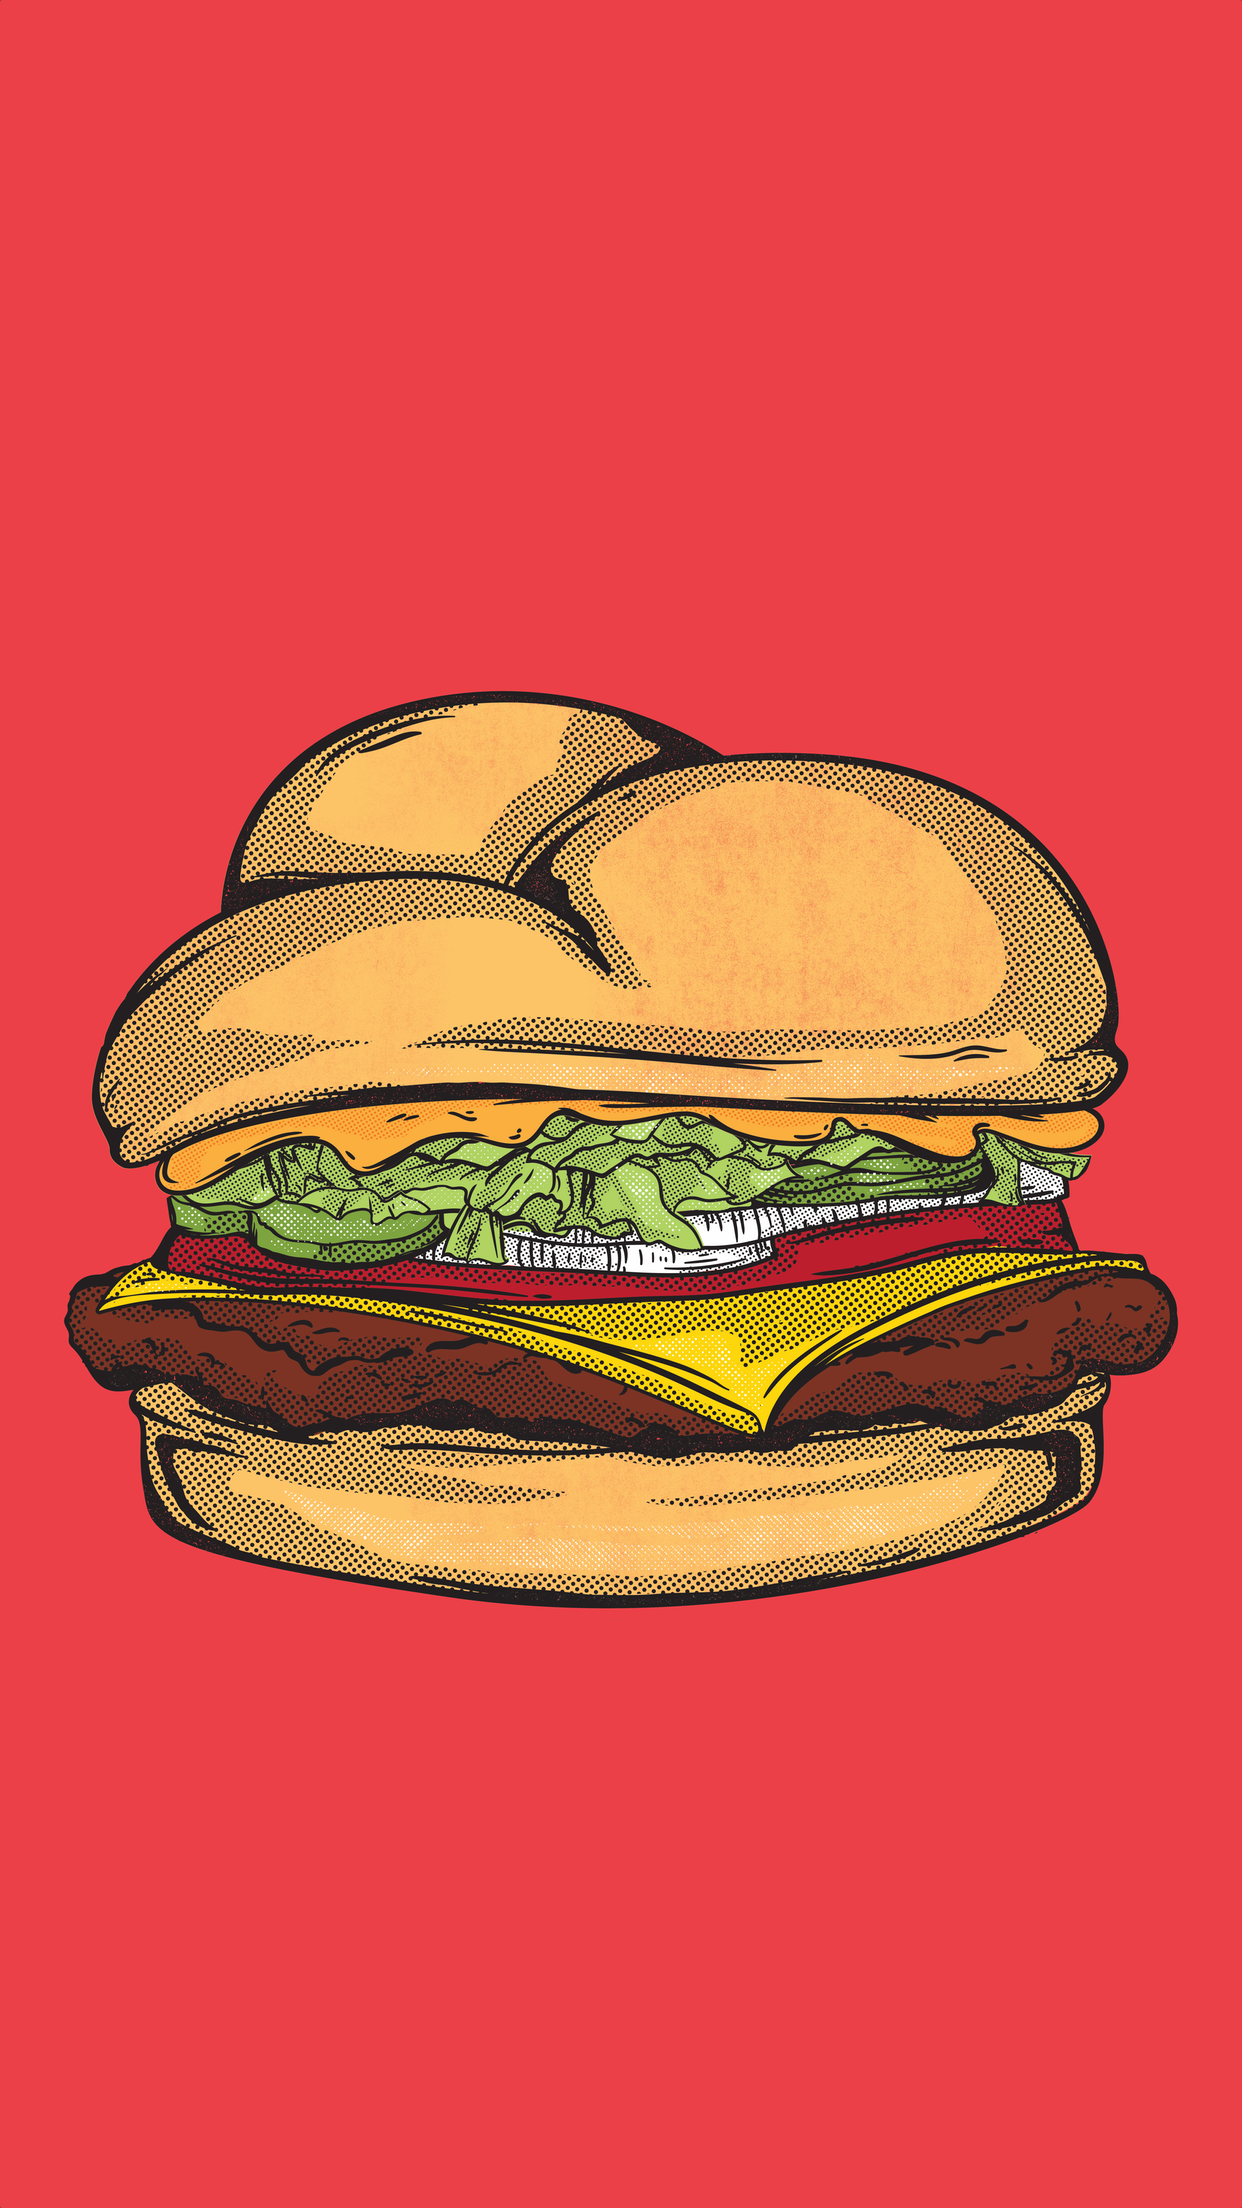 Cheeseburger on red background